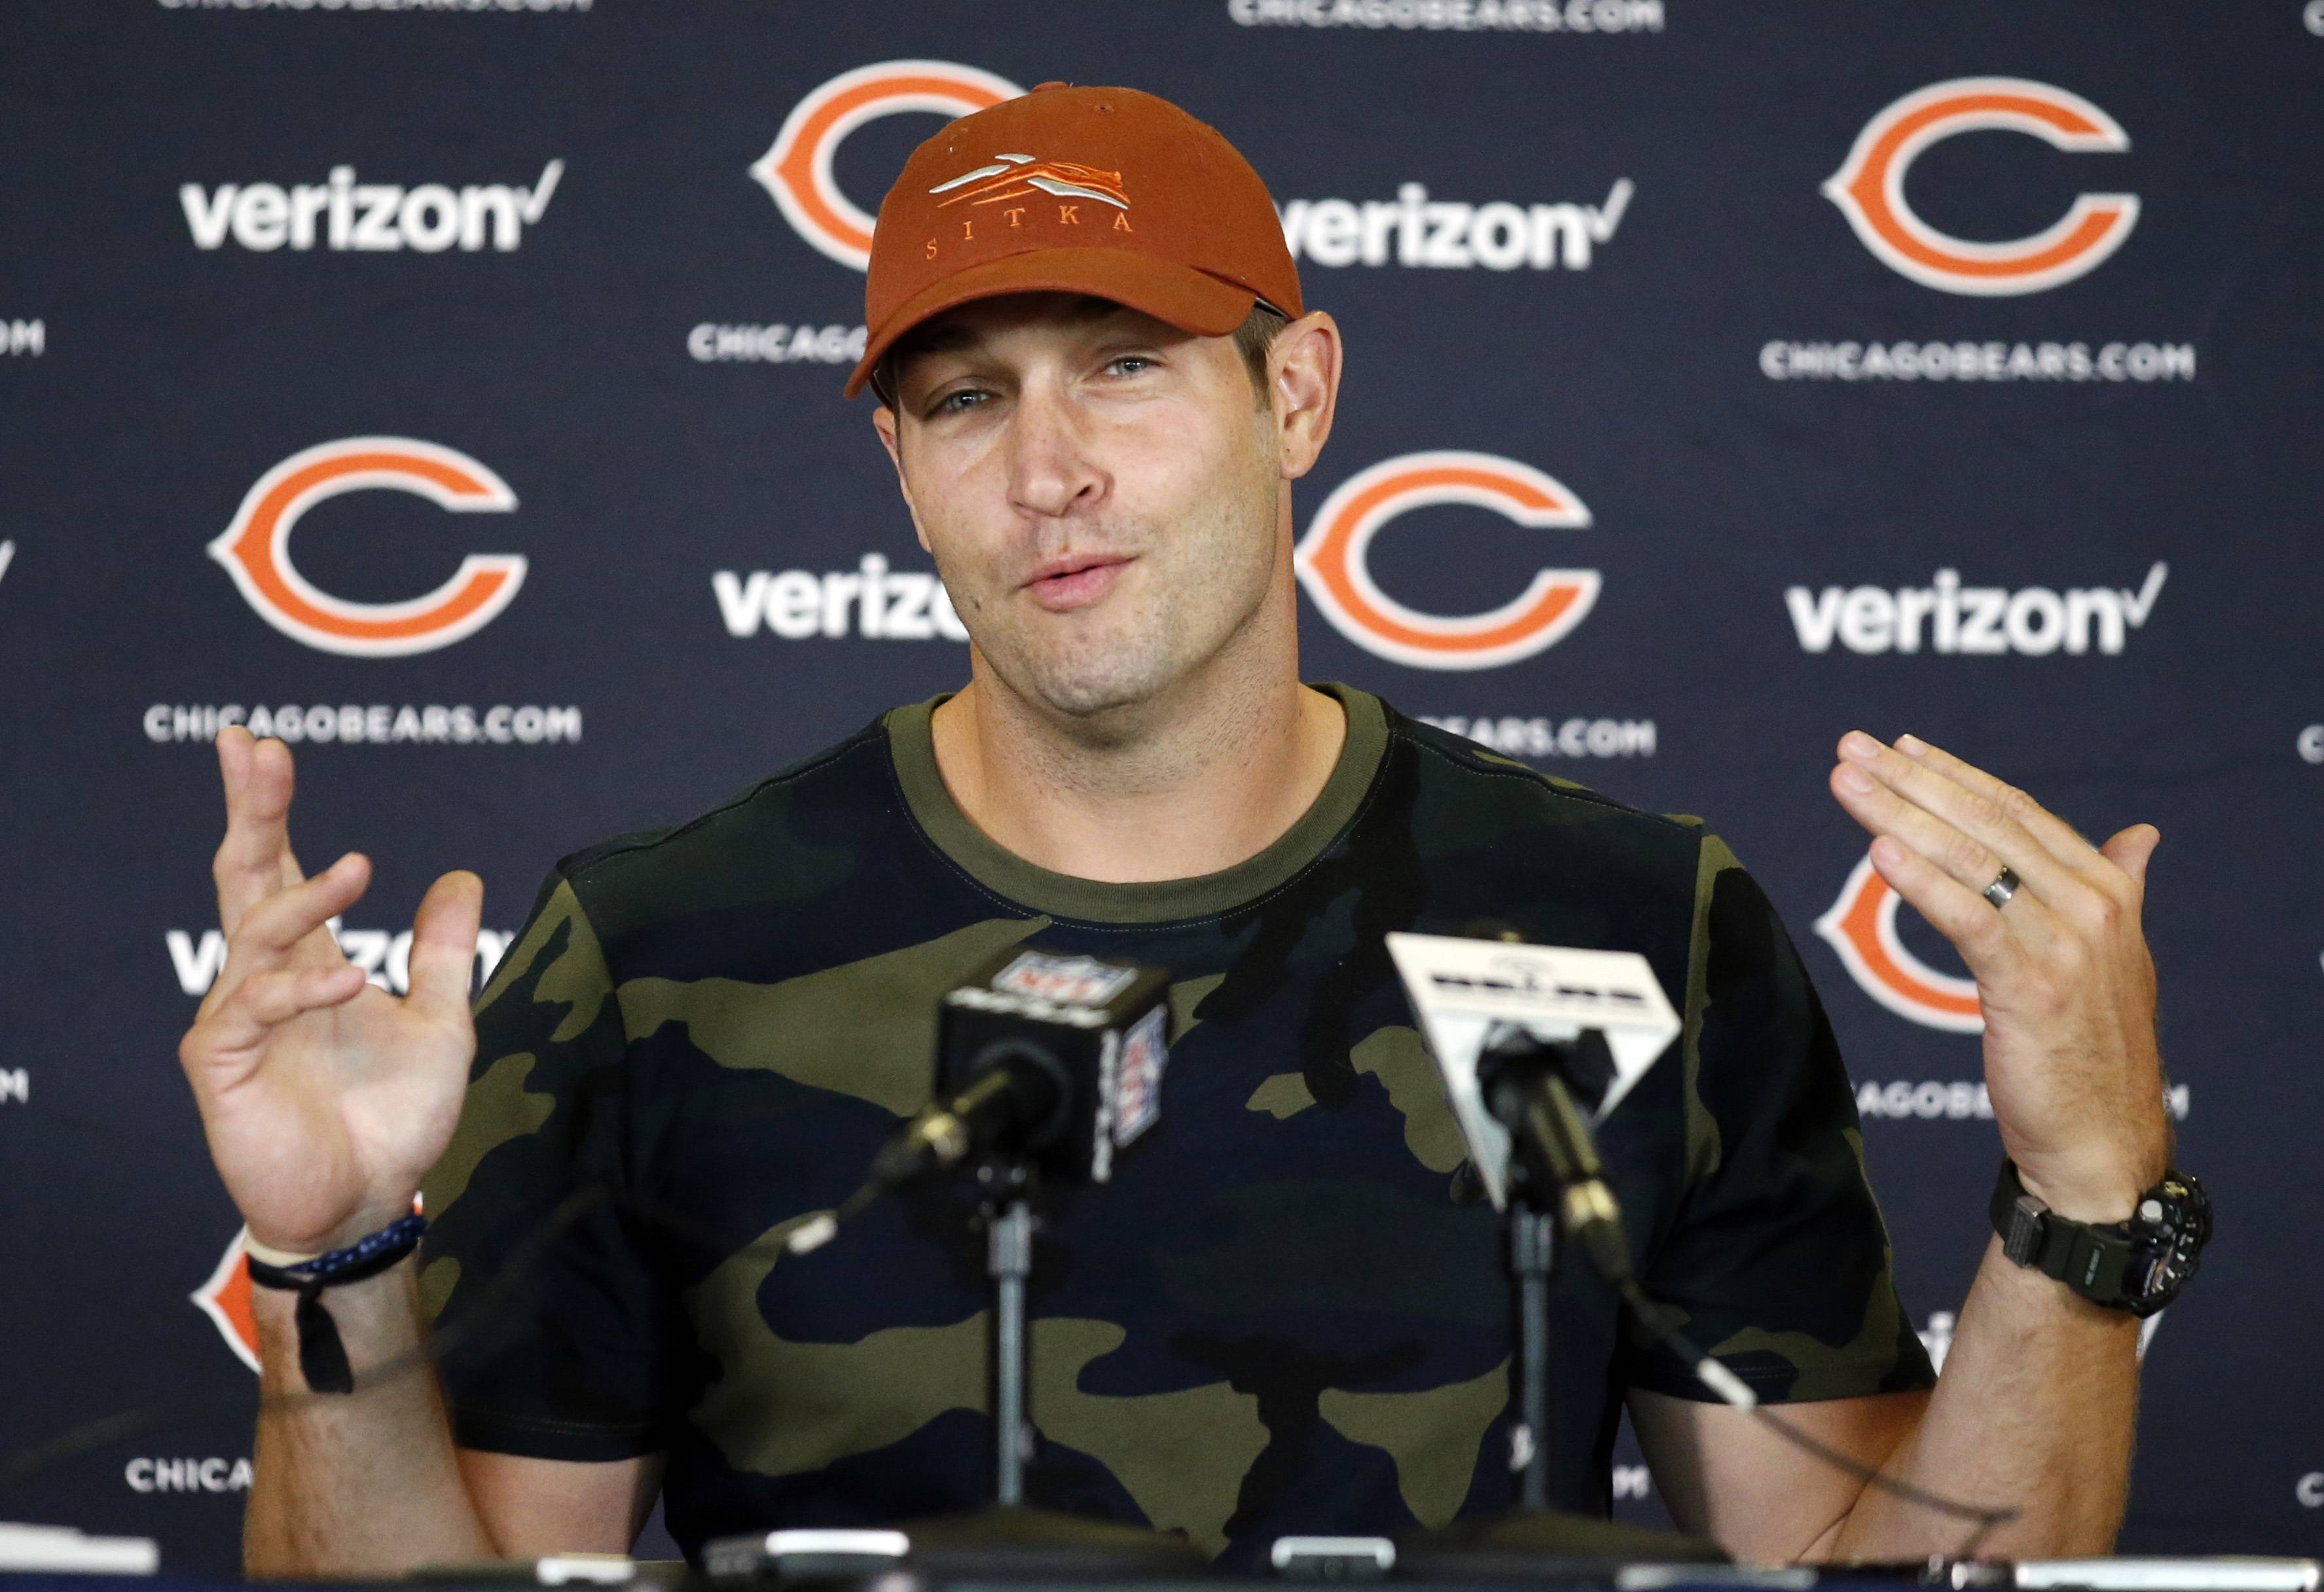 Chicago Bears quarterback Jay Cutler smiles as he speaks at a news conference during team's NFL football training camp at Olivet Nazarene University, Wednesday, July 27, 2016, in Bourbonnais, Ill. (AP Photo/Nam Y. Huh)